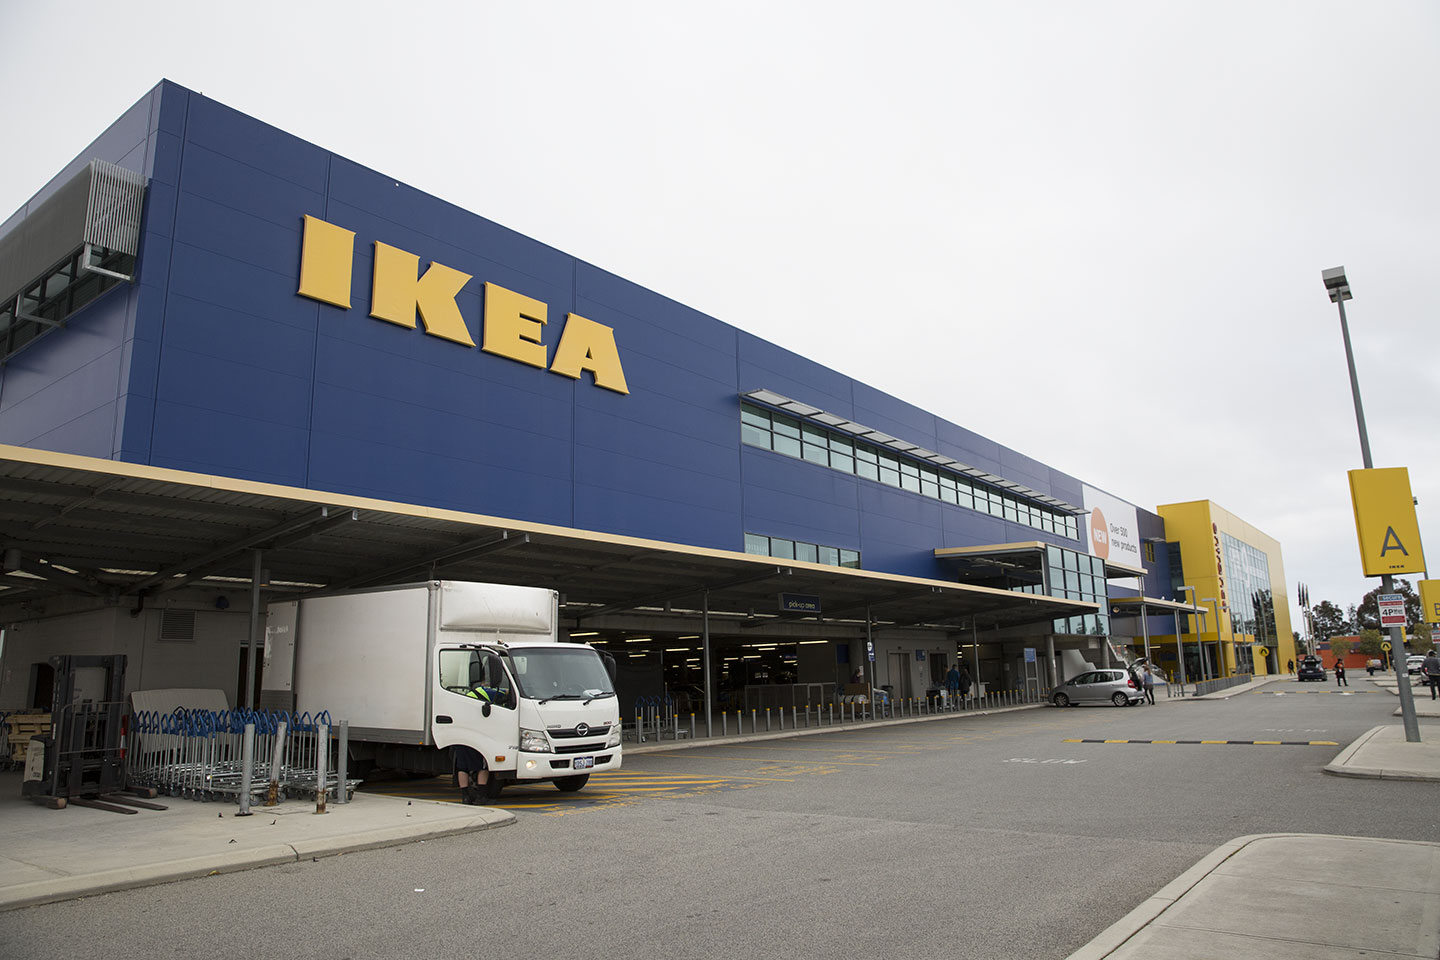 Ikea Couches Perth Gdi In 143m Bid For Perths Ikea Store Business News